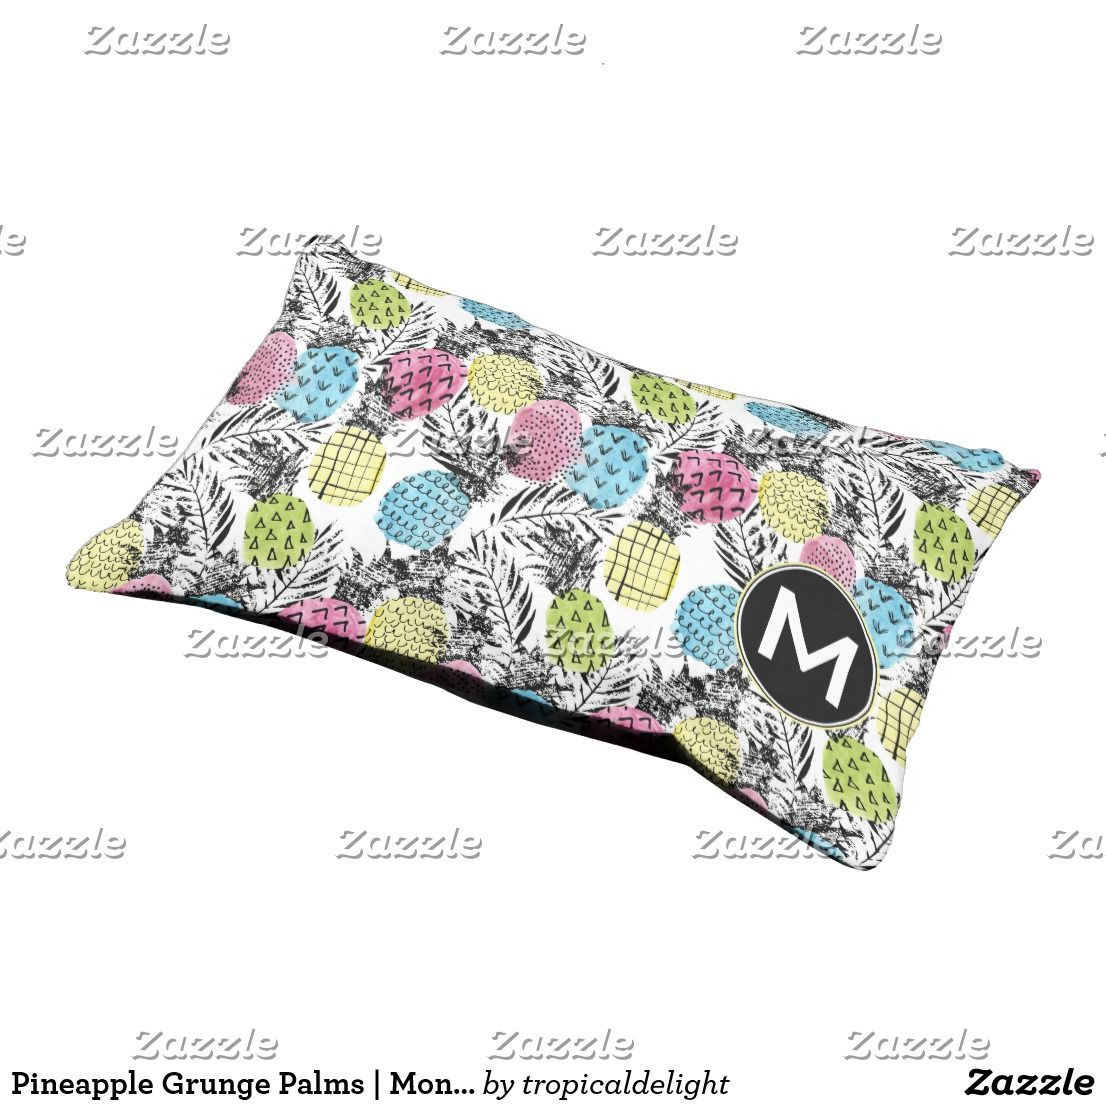 Pineapple Grunge Palms Monogram Pet Bed